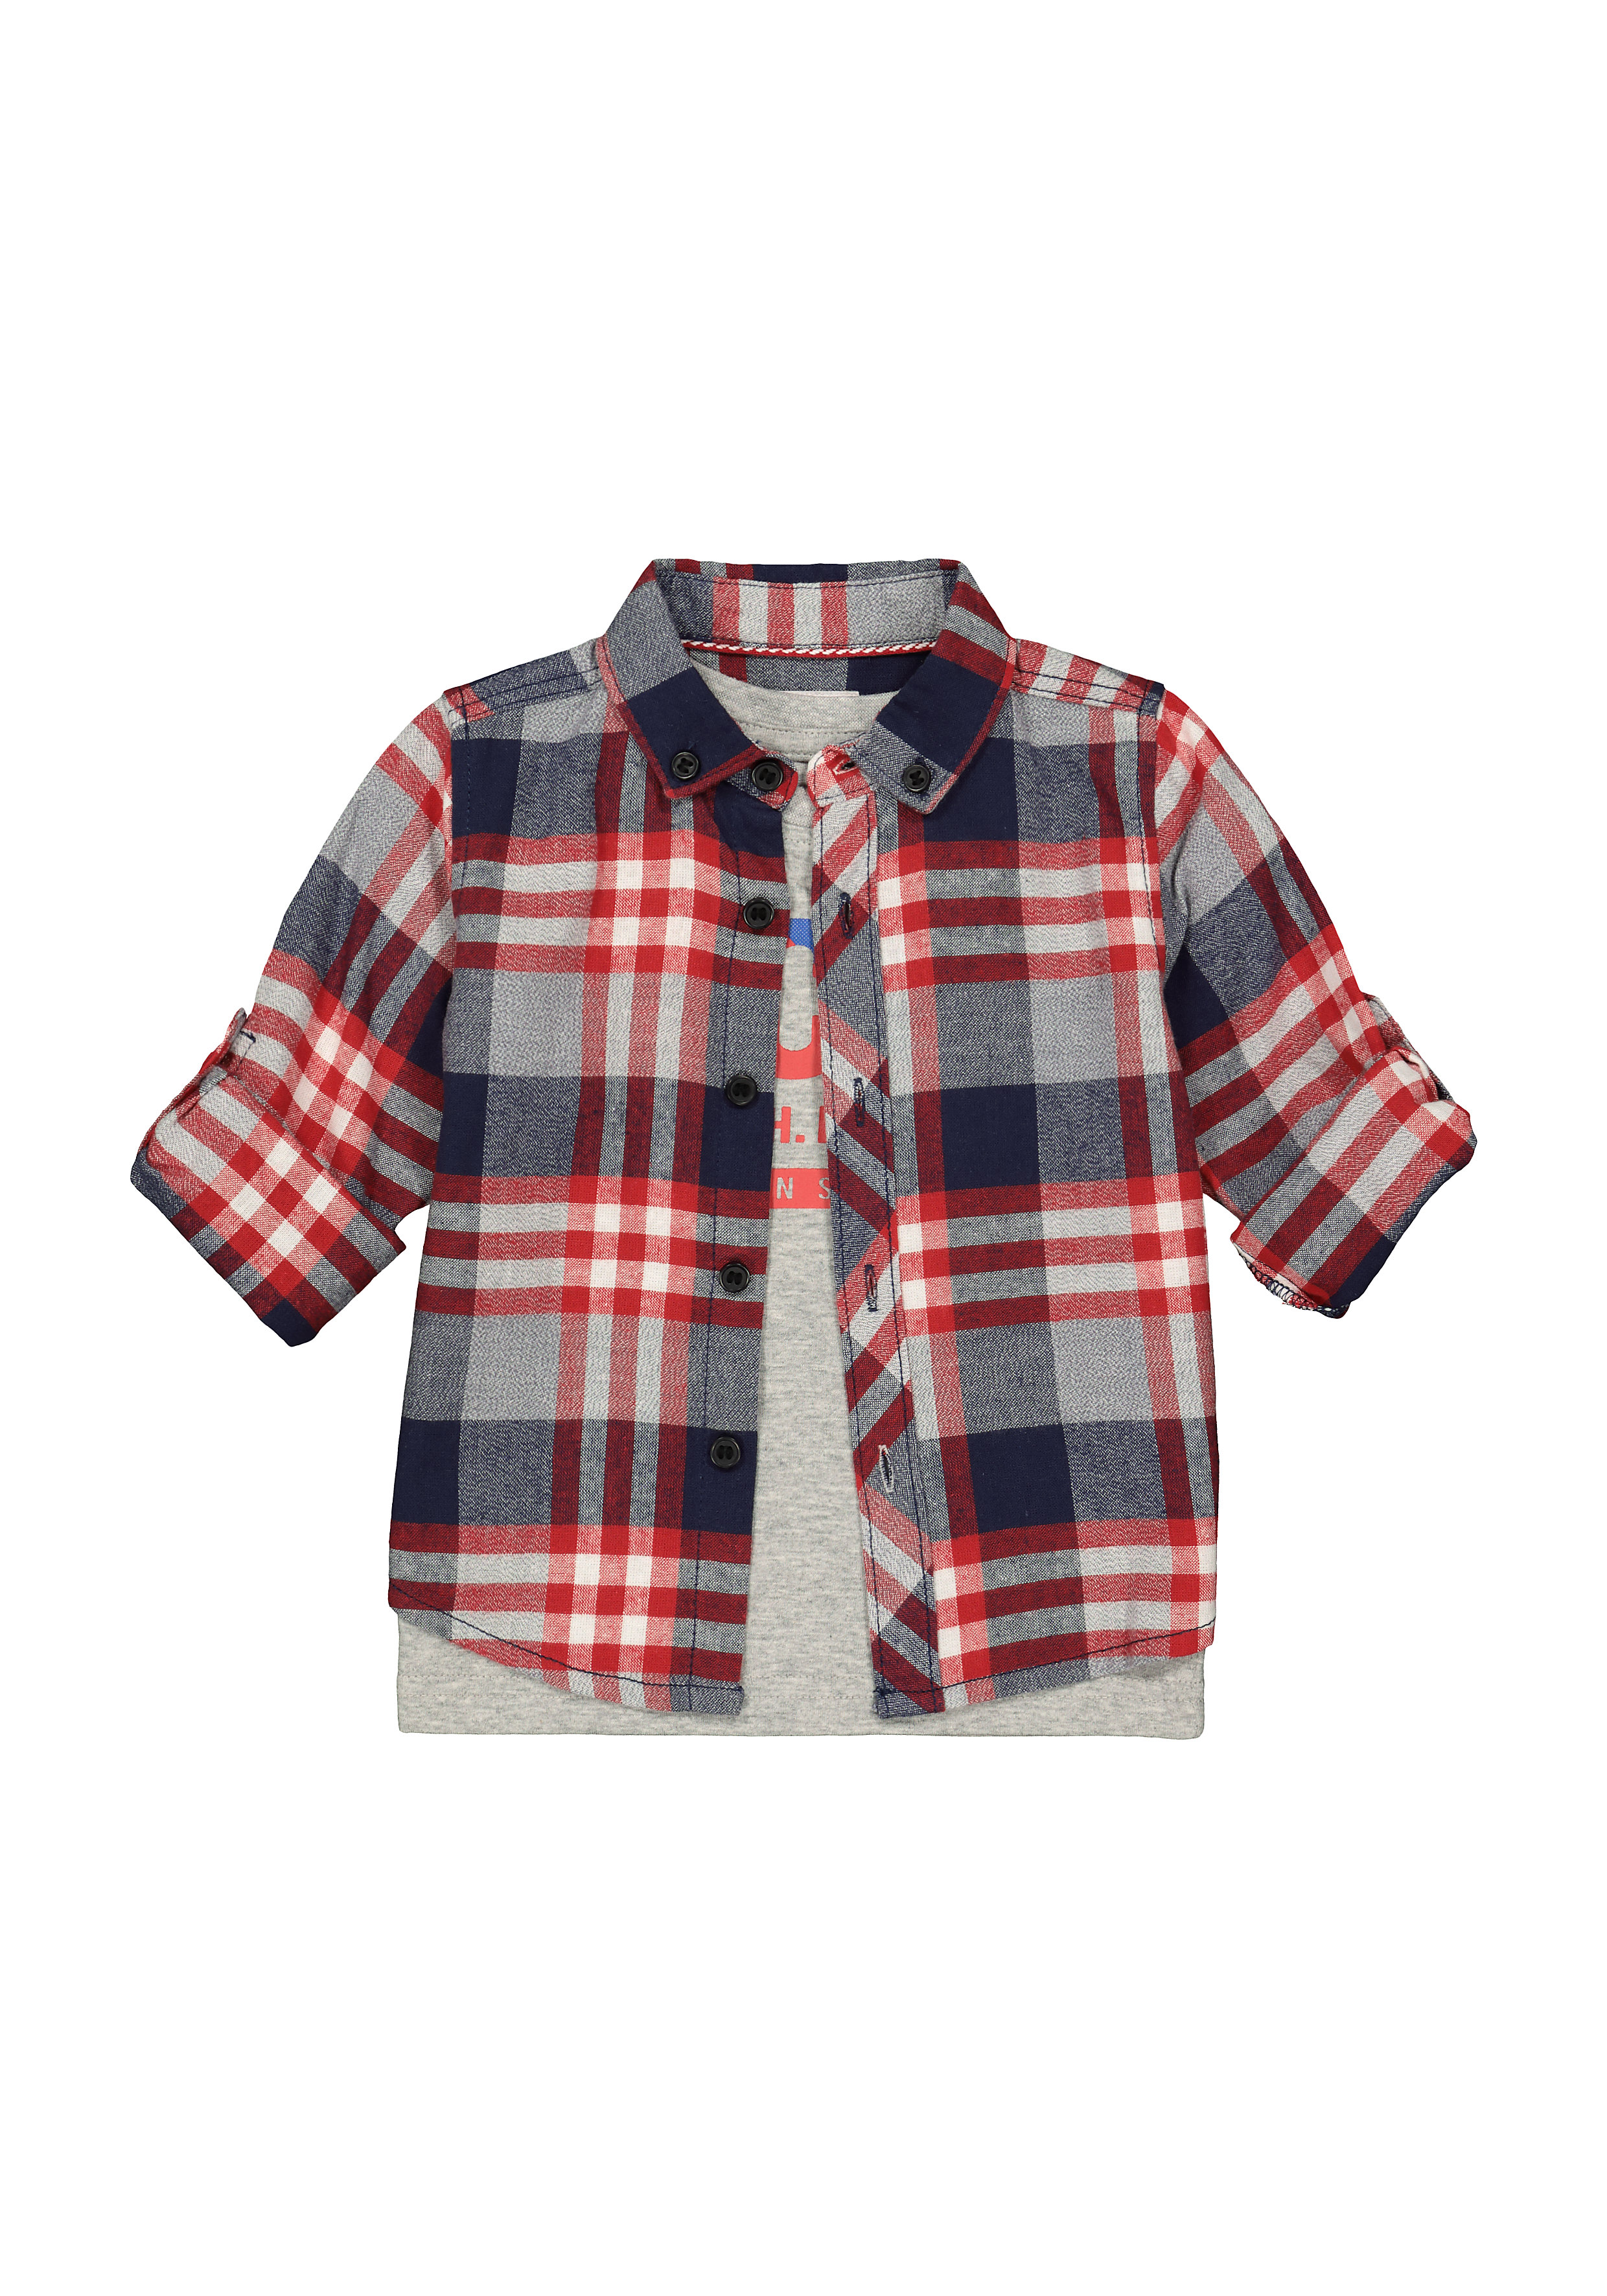 Mothercare | Boys Full Sleeves Casual Shirts  - Pack Of 2 - Multicolor